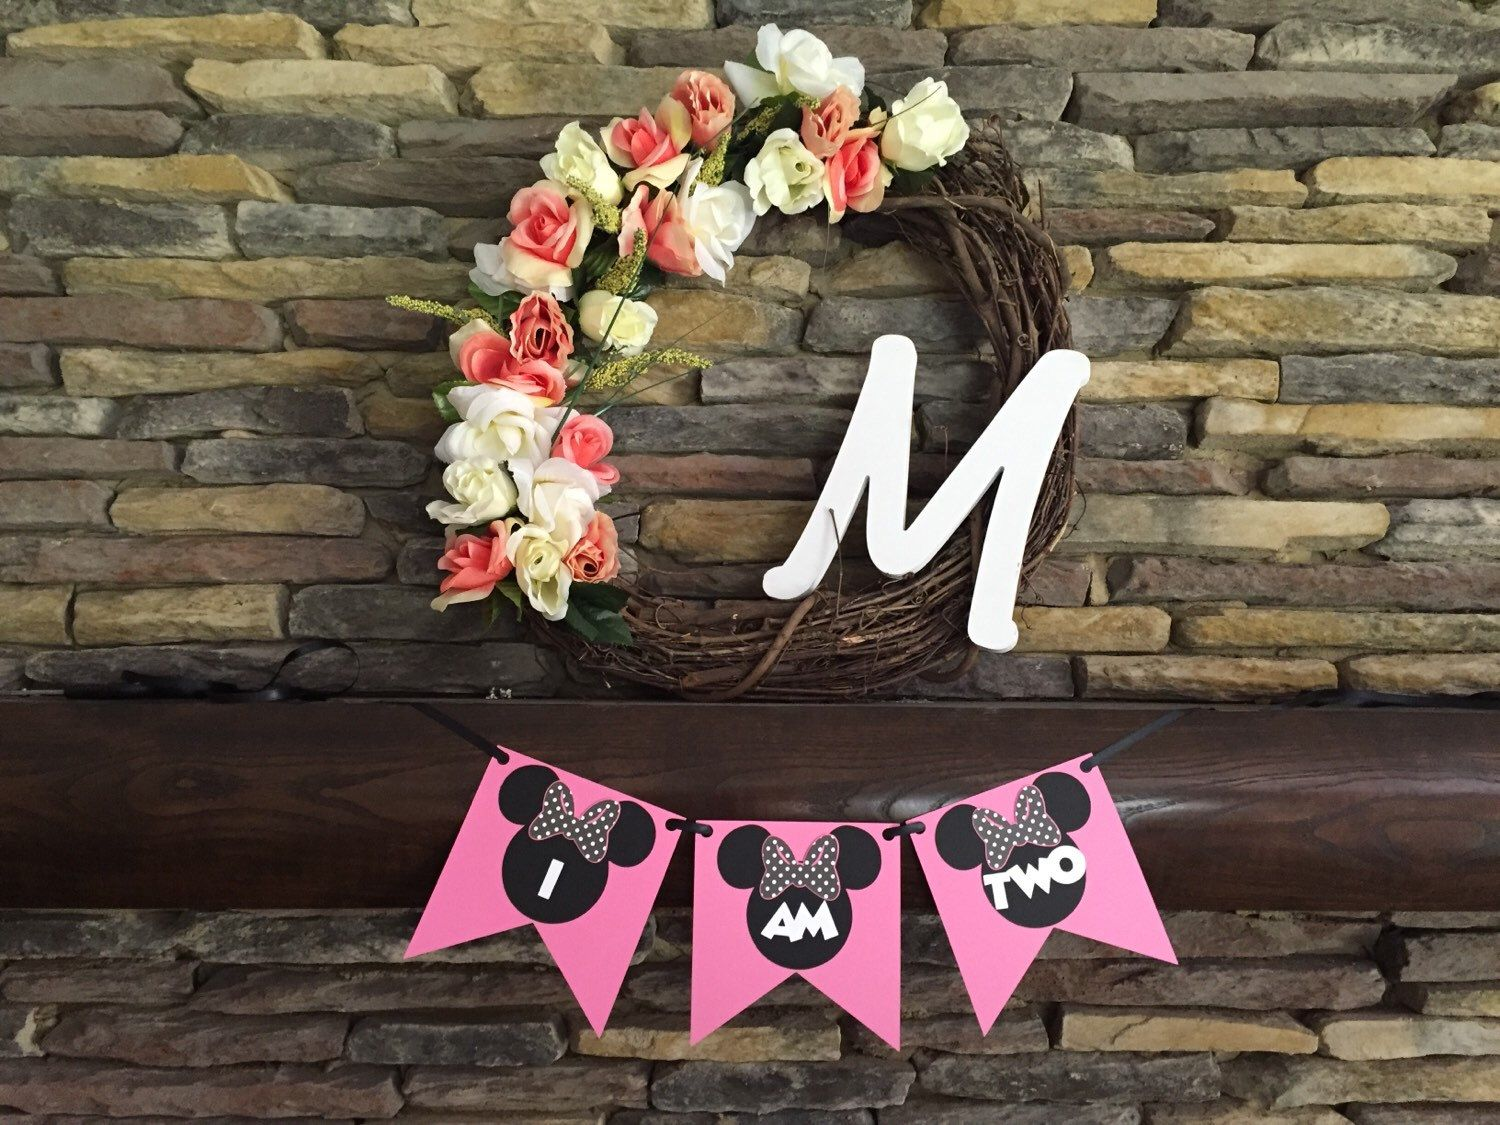 Minnie Mouse One Two Three Four Banner Happy Birthday Minnie Banner Minnie Mouse Decor Mickey Mouse Disney Birthday Party by PaperMadeParty on Etsy https://www.etsy.com/listing/398285017/minnie-mouse-one-two-three-four-banner